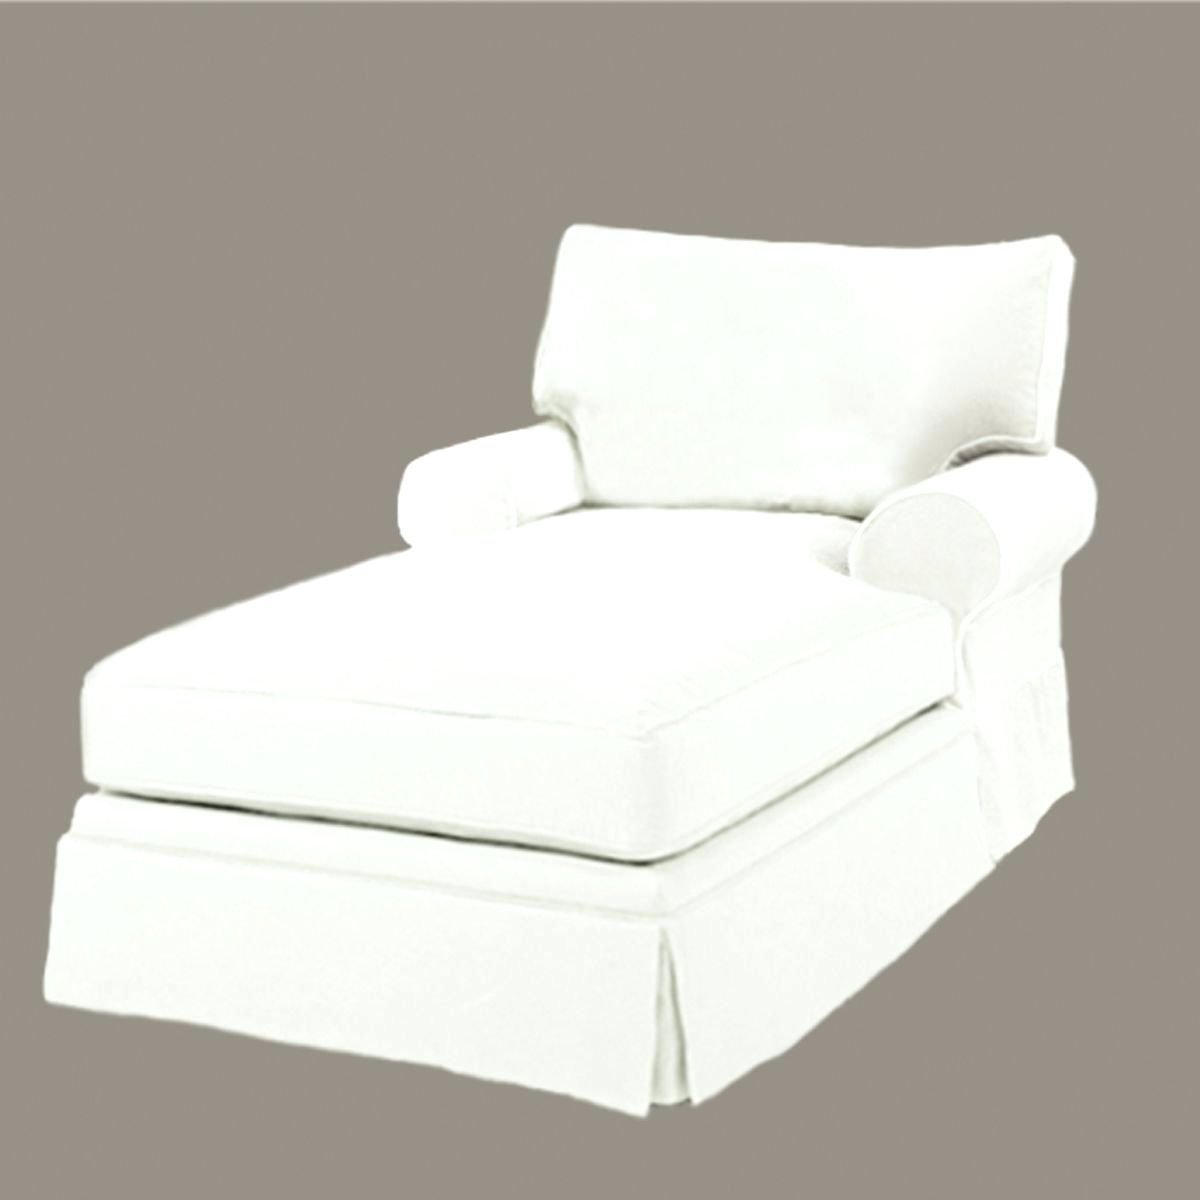 Most Recent Indoor Chaise Lounge Slipcovers Throughout Cover For Indoor Chaise Lounge Chair • Lounge Chairs Ideas (View 12 of 15)